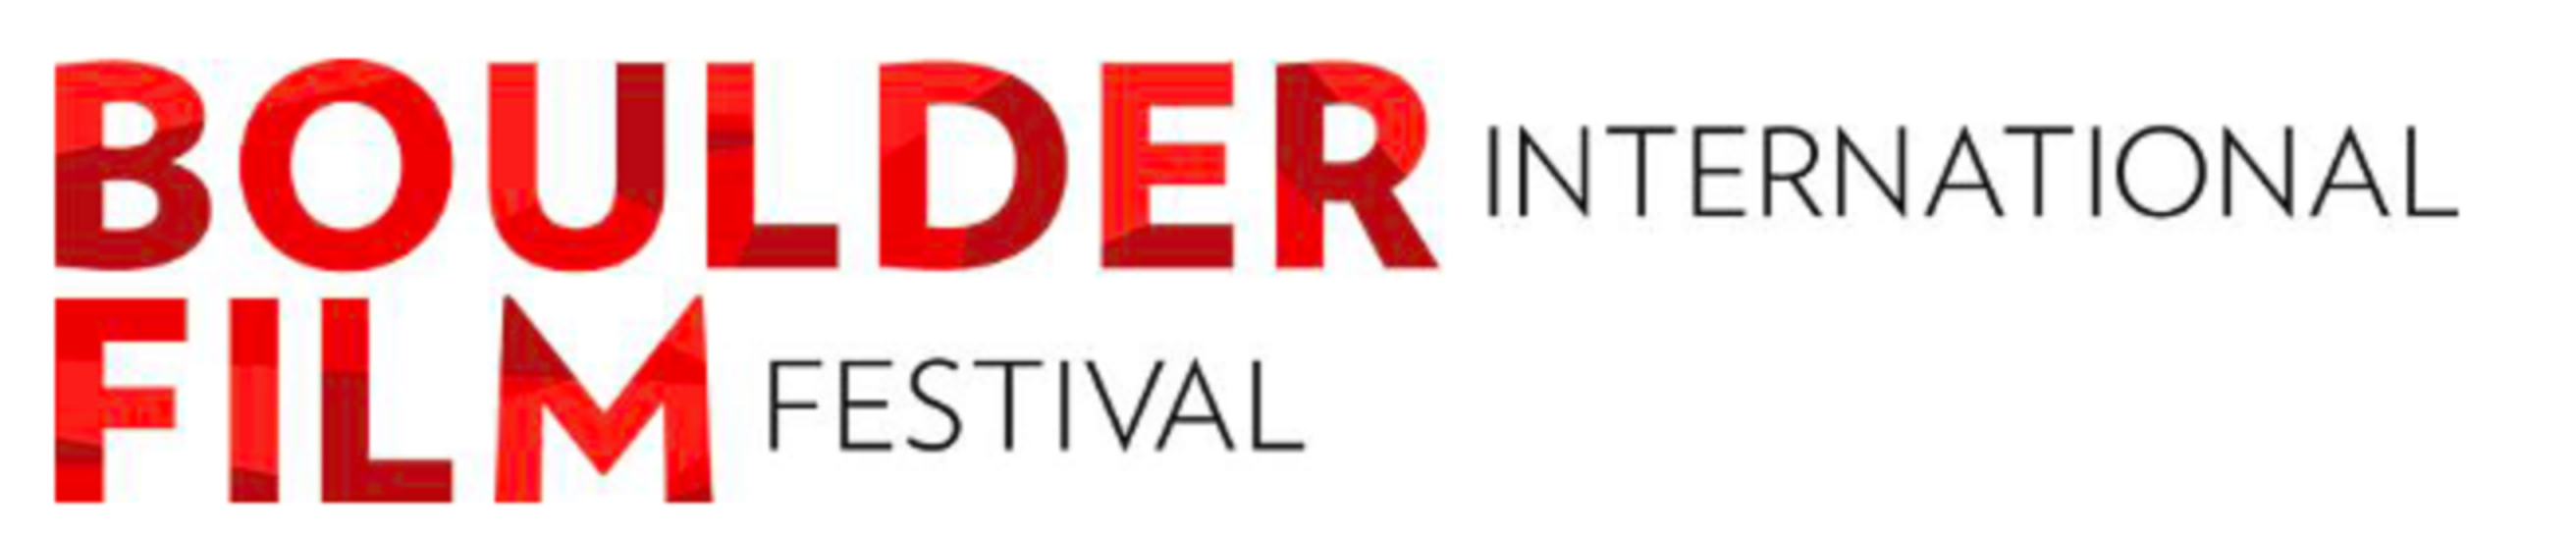 55 Films Announced for the Boulder International Film Festival